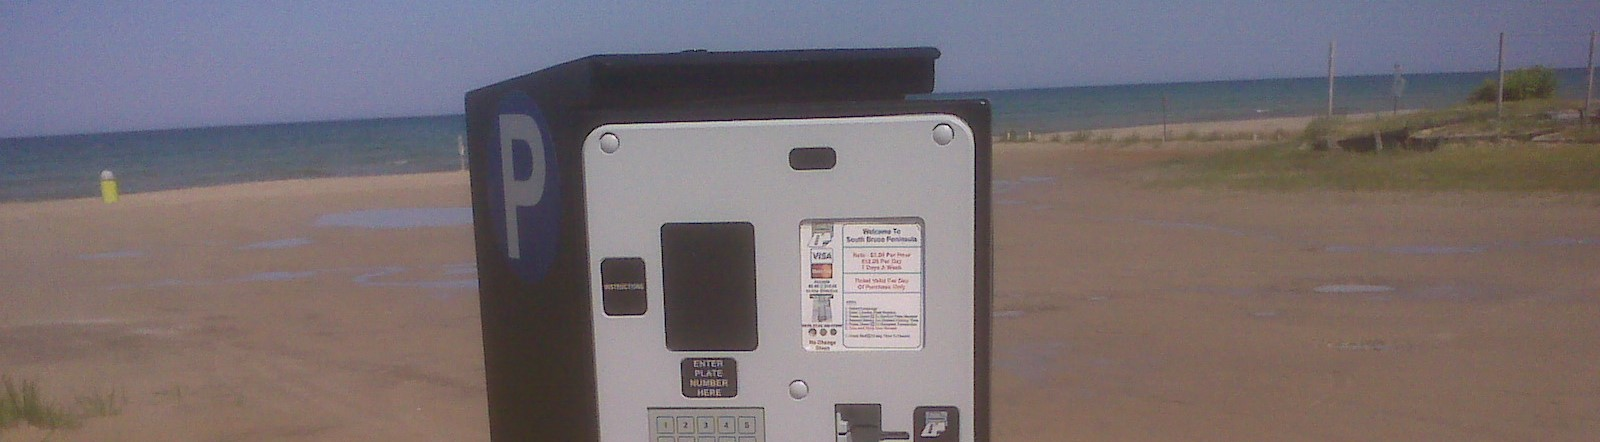 Photo of paid parking machine at Sauble Beach